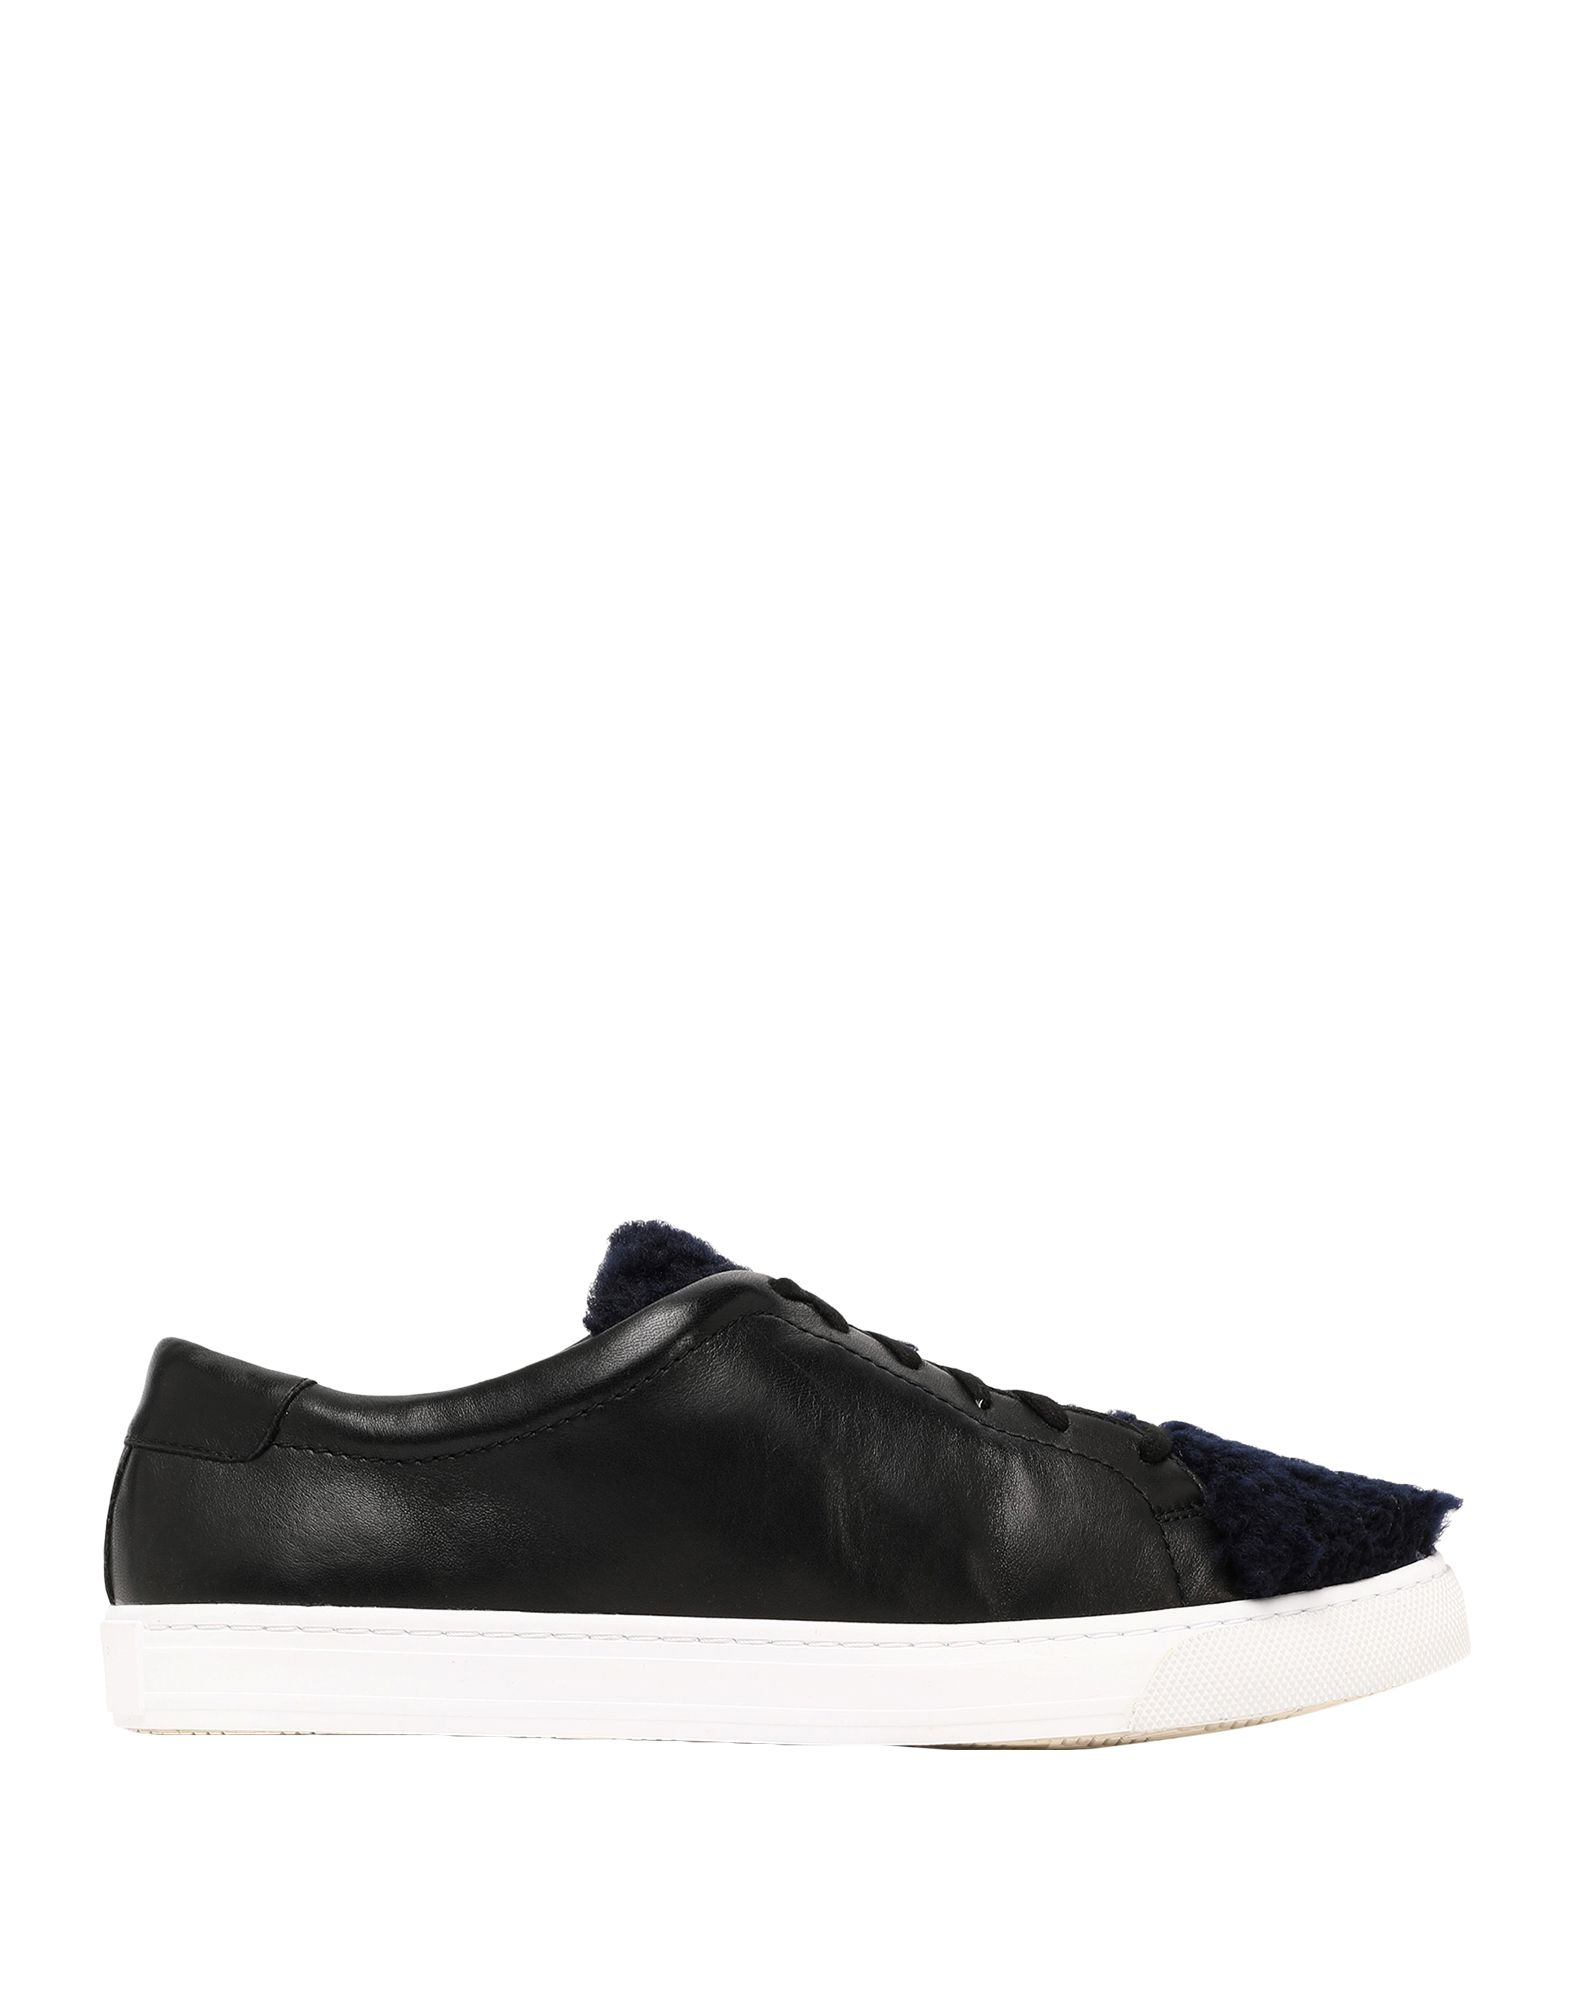 Loeffler Randall Sneakers - Women Loeffler Randall Sneakers online on 11567708OG  United Kingdom - 11567708OG on 03fce3